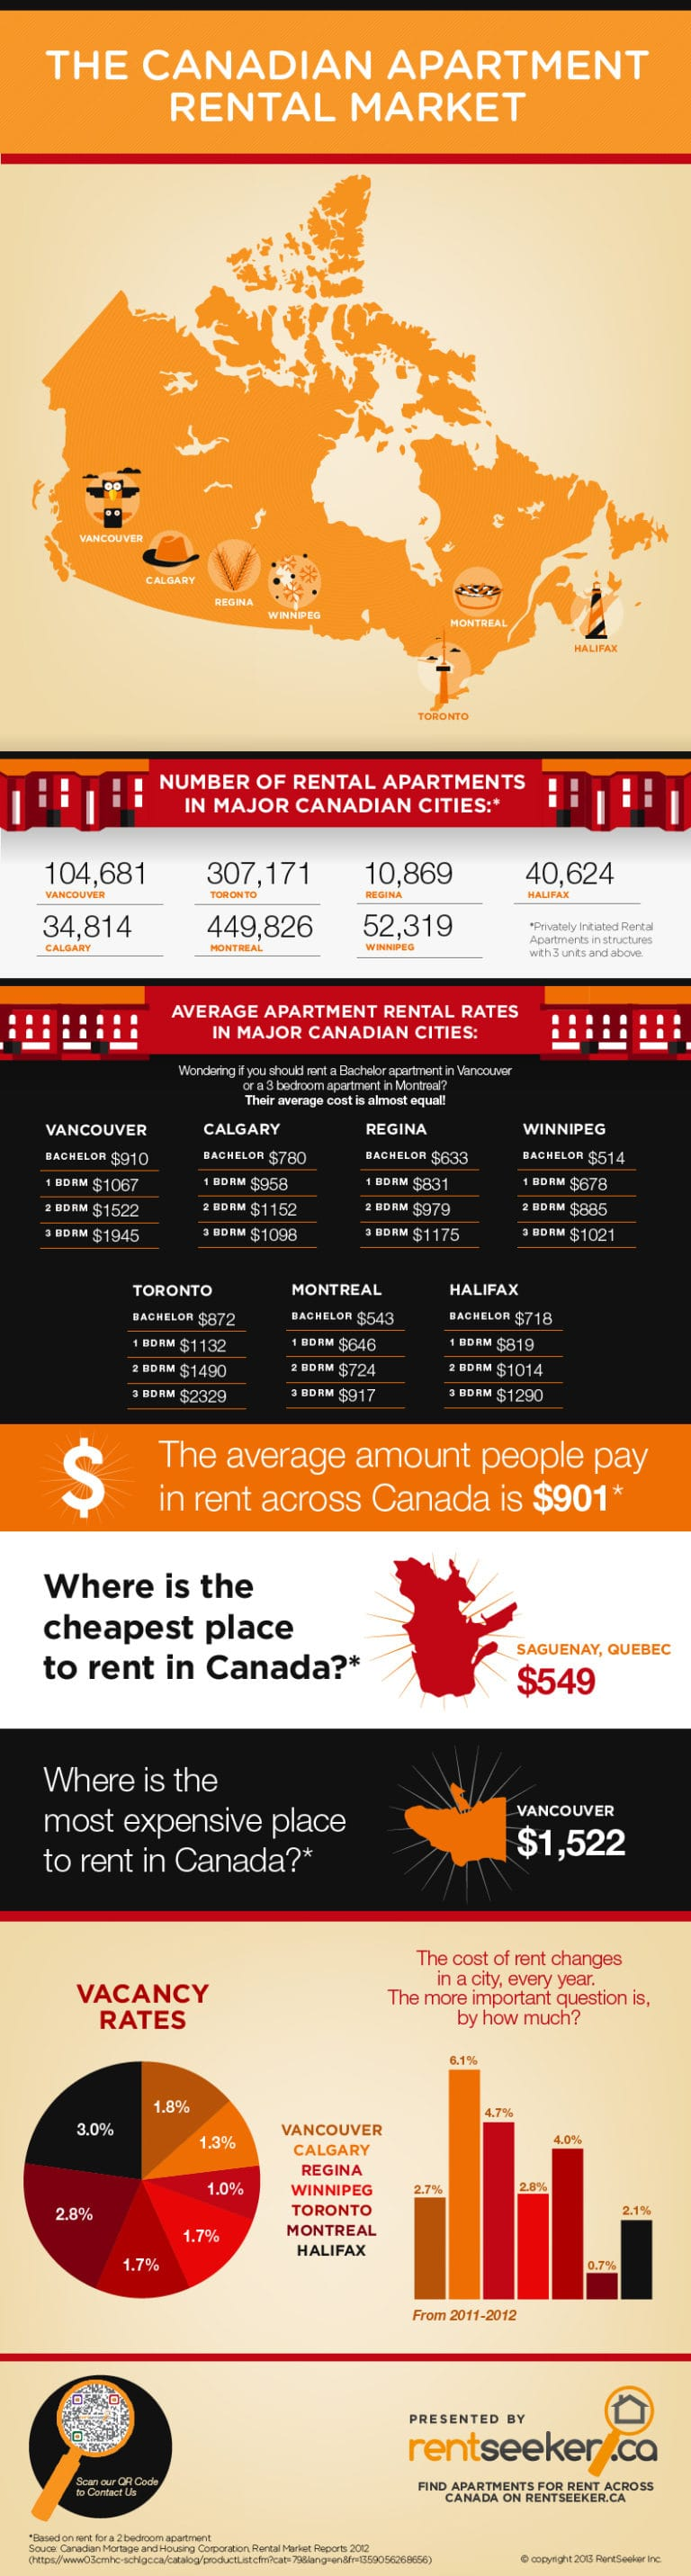 Canadian Rental Market Infographics presented by RentSeeker.ca